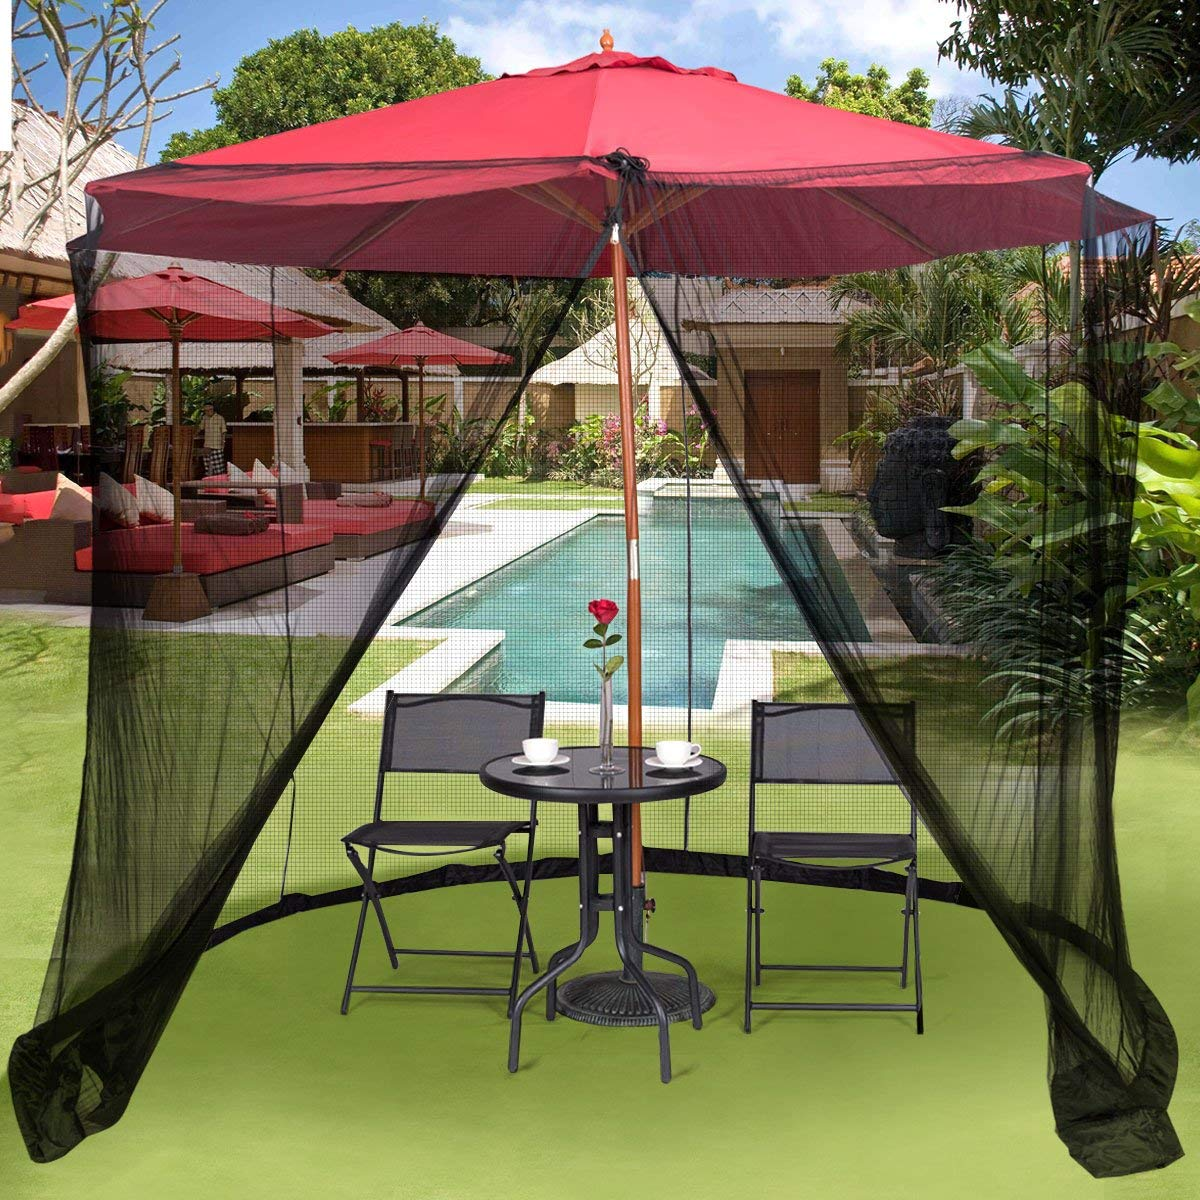 BAOZOON Patio Umbrella Cover Outdoor Camping Tents Mosquito Netting Screen Polyester Zippered Mesh Enclosure for Patio Table Umbrella, Garden Deck Furniture by BAOZOON